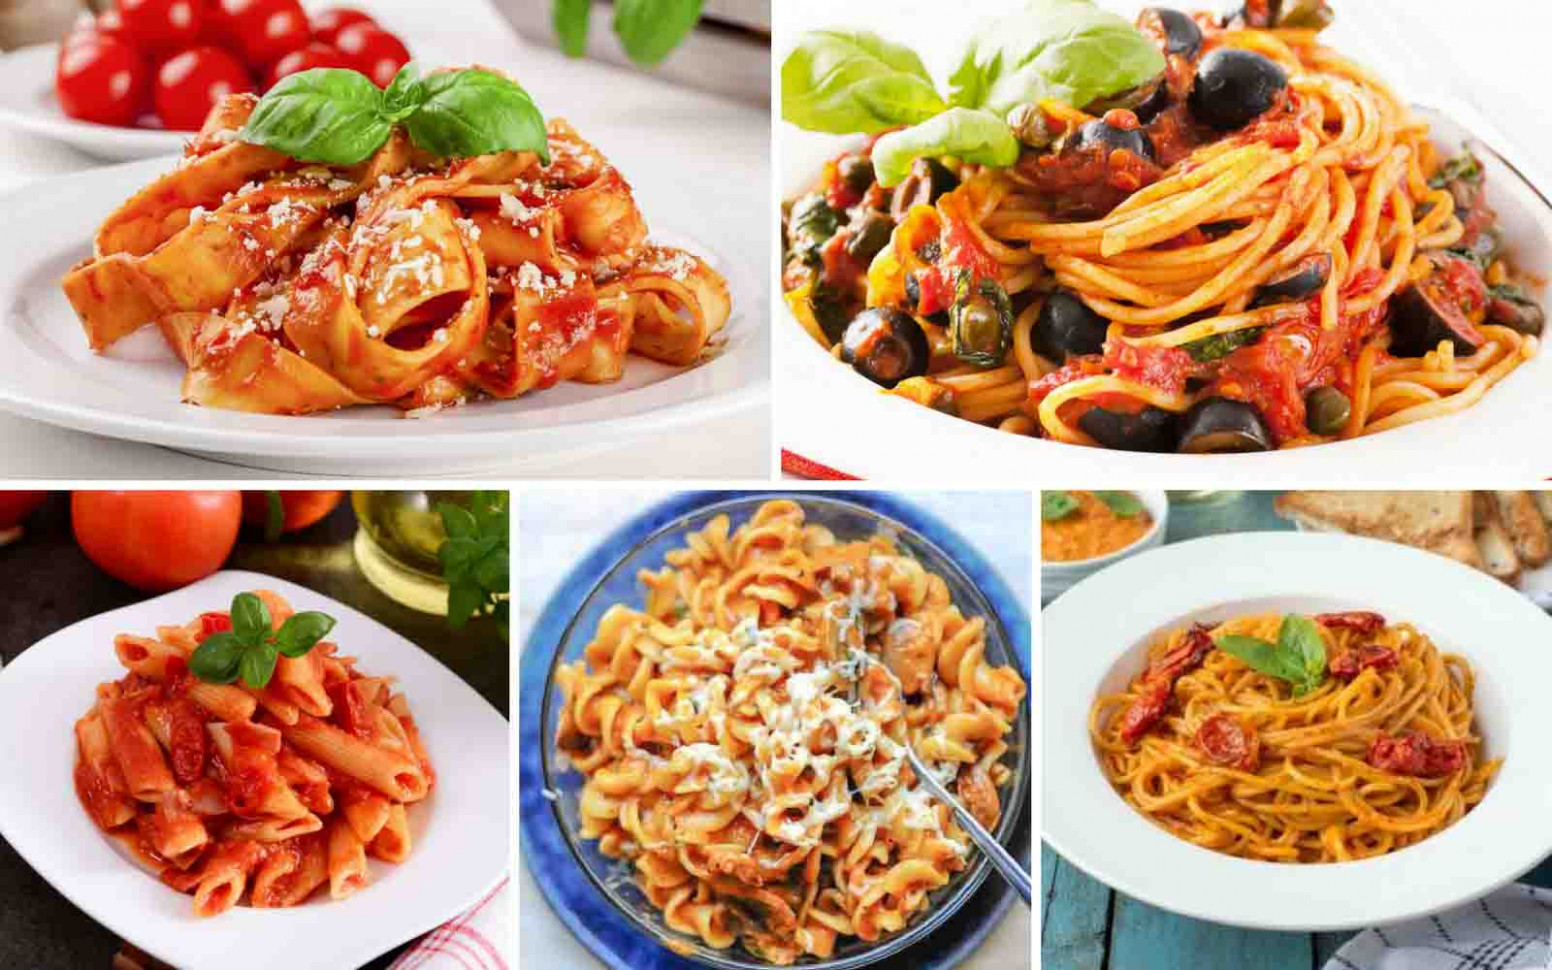 15 Red Sauce Pasta Recipes To Make A Delicious Italian ..